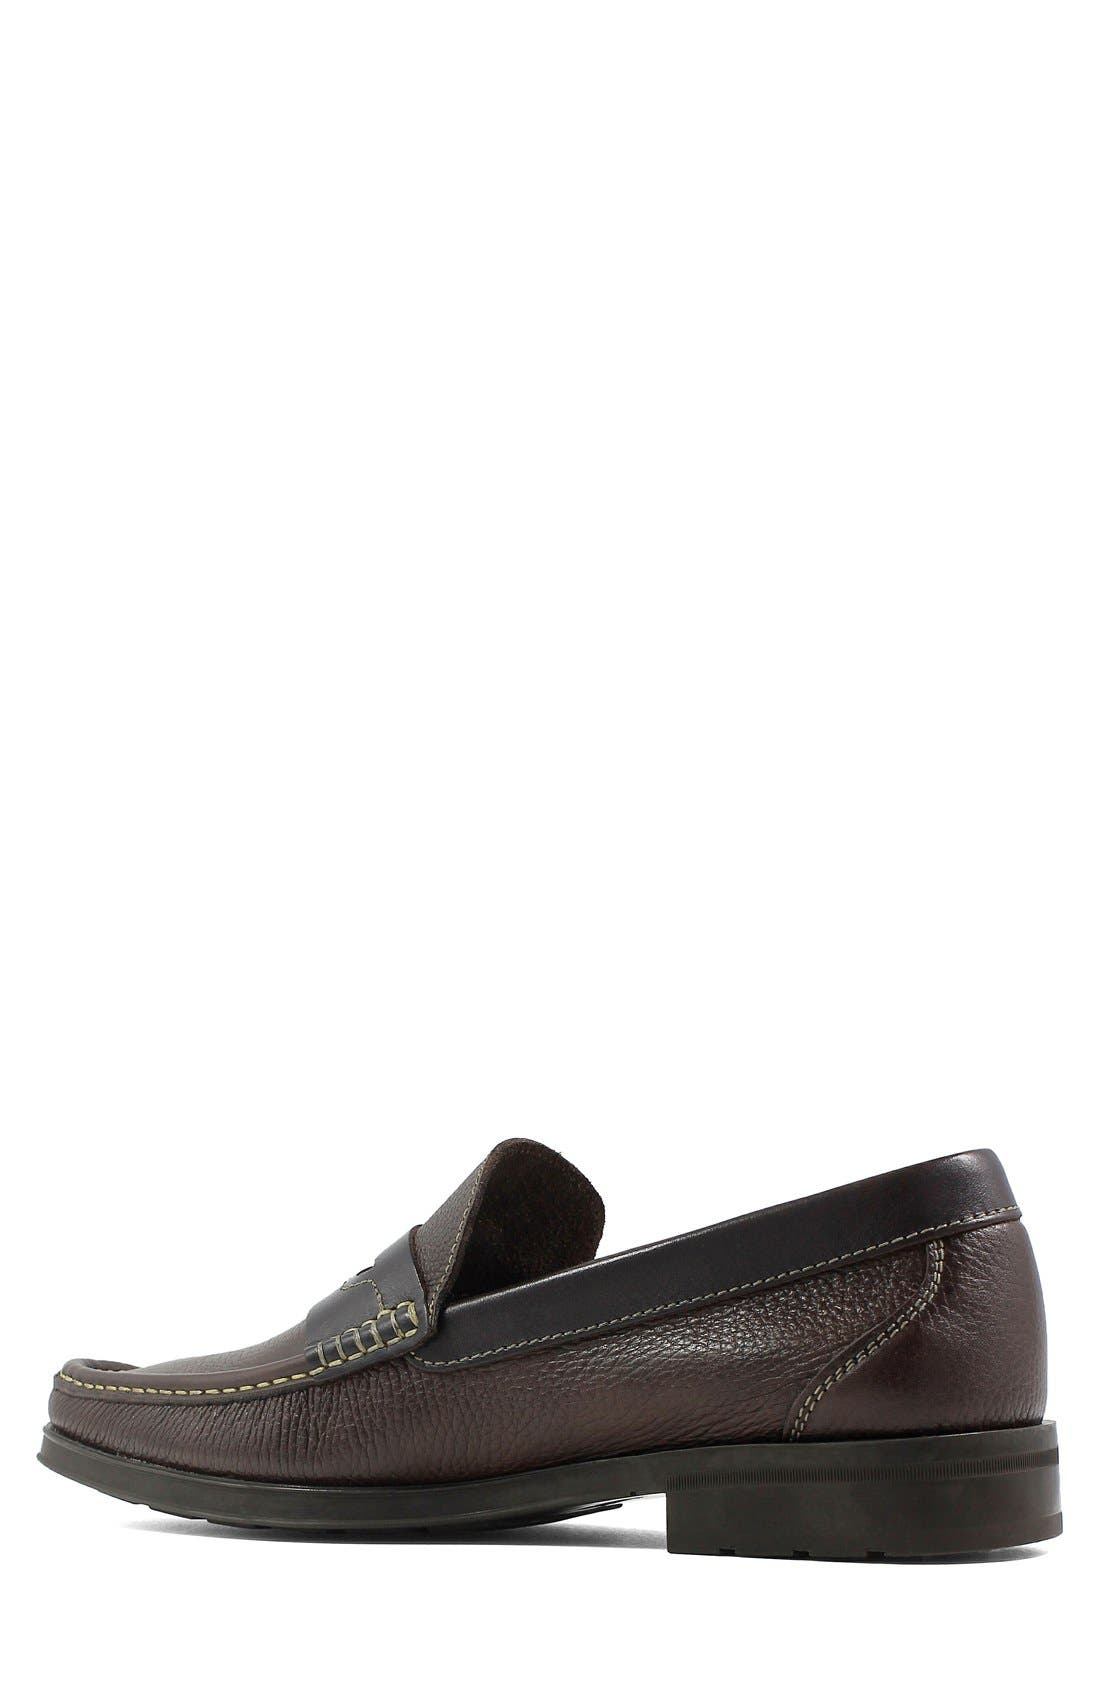 Westbrook Penny Loafer,                             Alternate thumbnail 18, color,